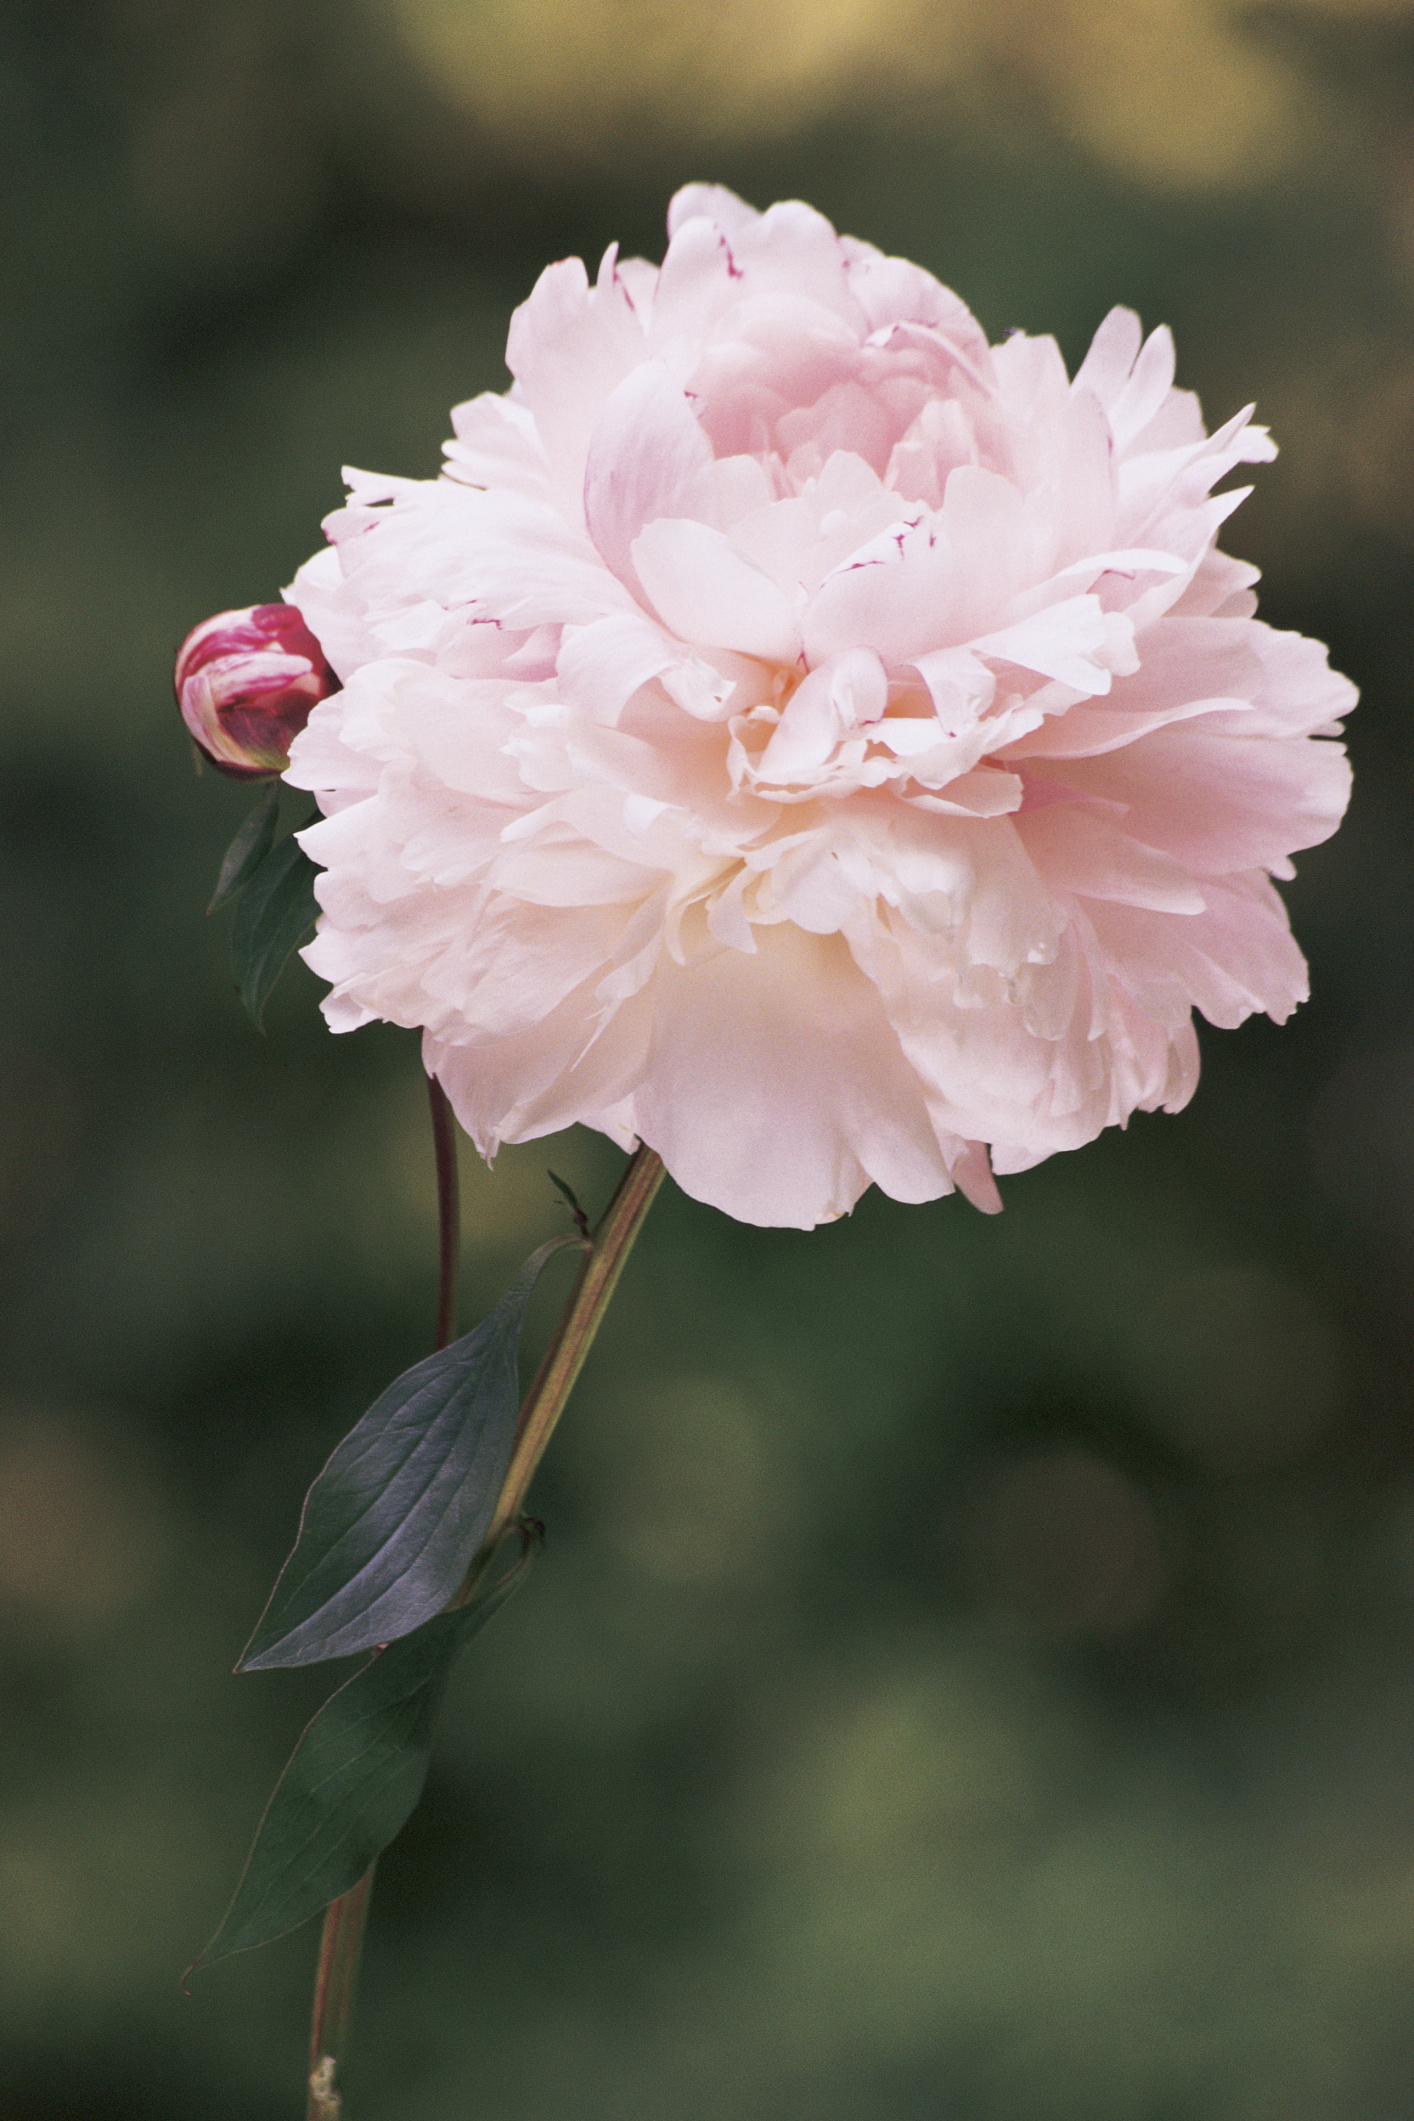 Pianese Flowers Peony Pet Poison Helpline